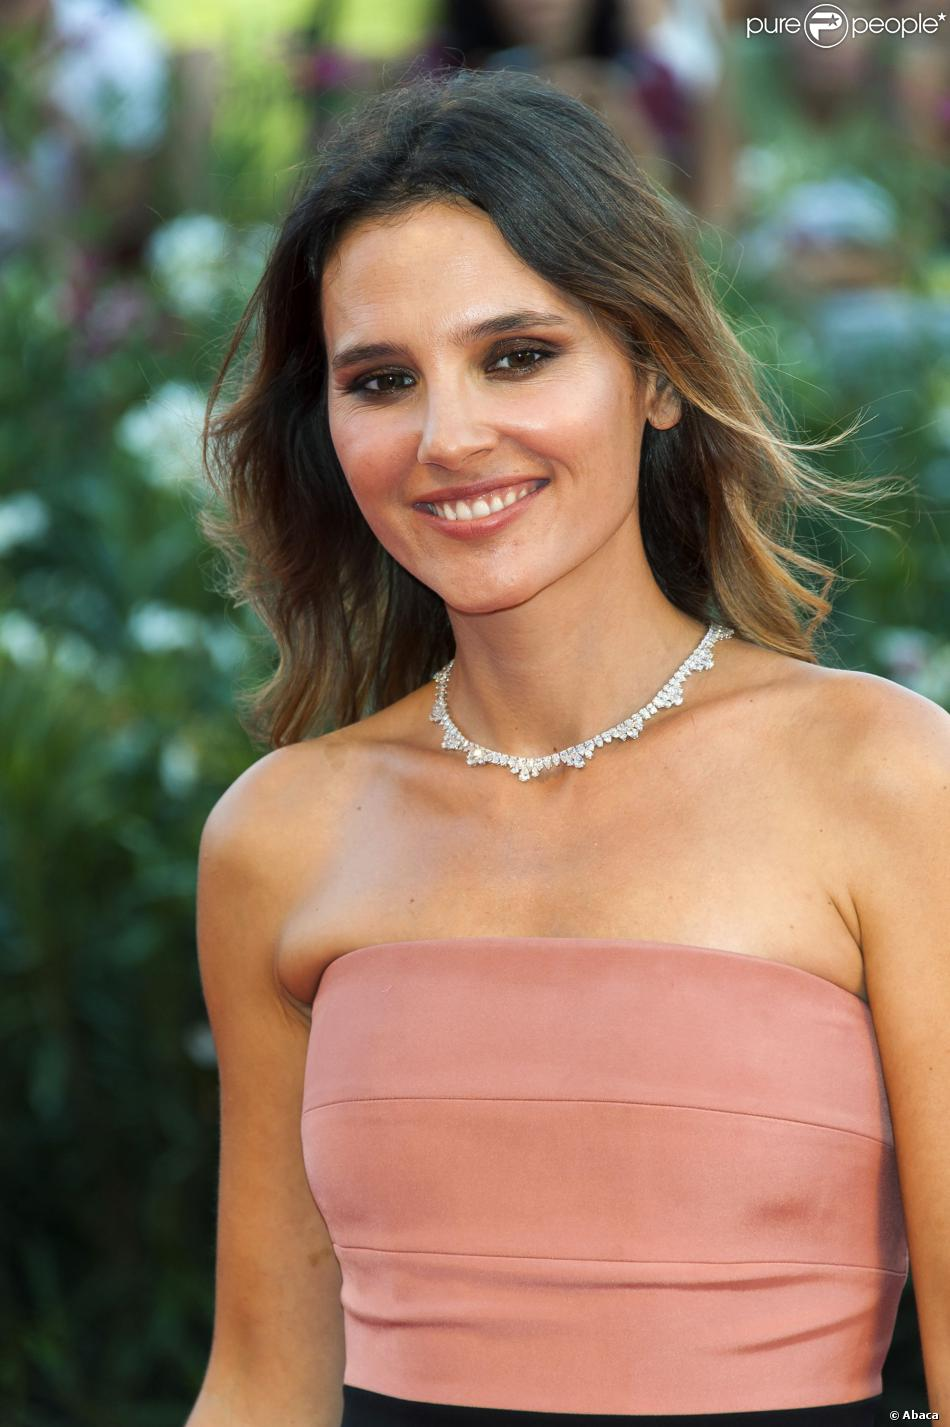 Virginie Ledoyen earned a  million dollar salary, leaving the net worth at 6 million in 2017